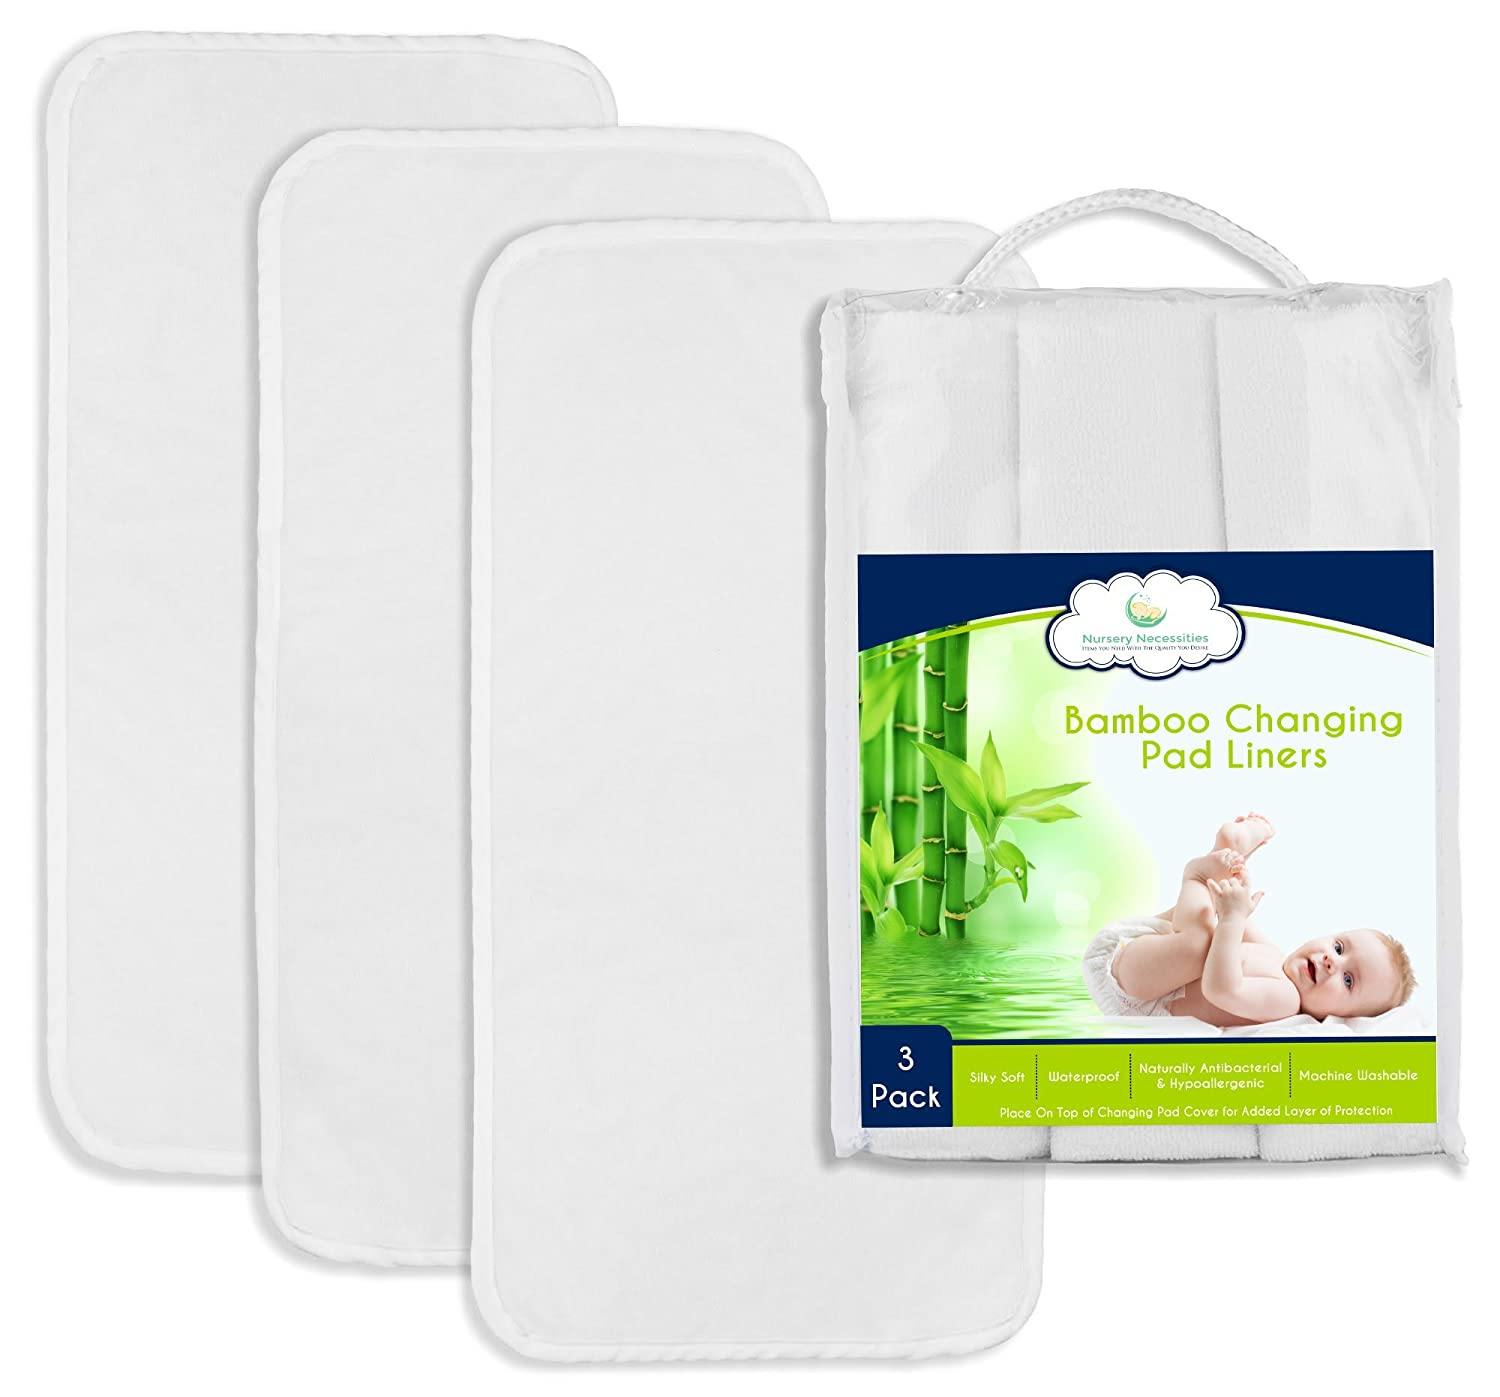 #1 BEST Bamboo Changing Pad Liners - 26.5 x 13 - 3 Pack - NEW & IMPROVED DESIGN - Waterproof, Antibacterial, Hypoallergenic, Machine Wash & Dry - By Nursery Necessities DWJ Products